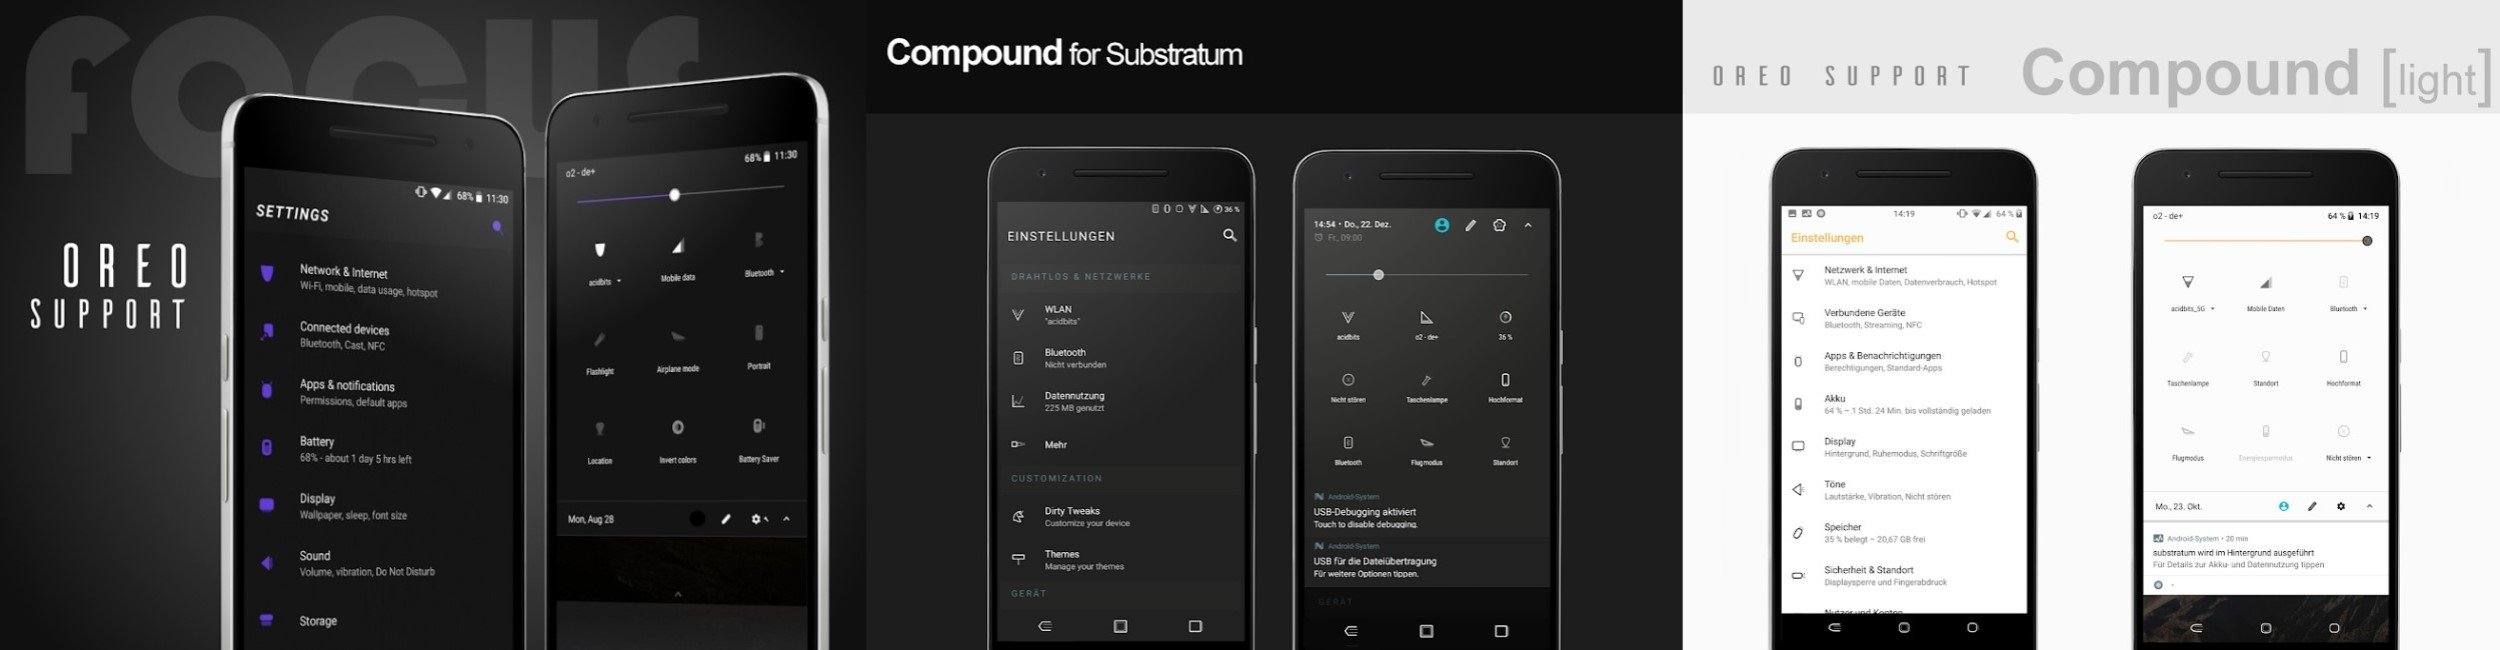 10 Best Substratum Themes Focus Compound